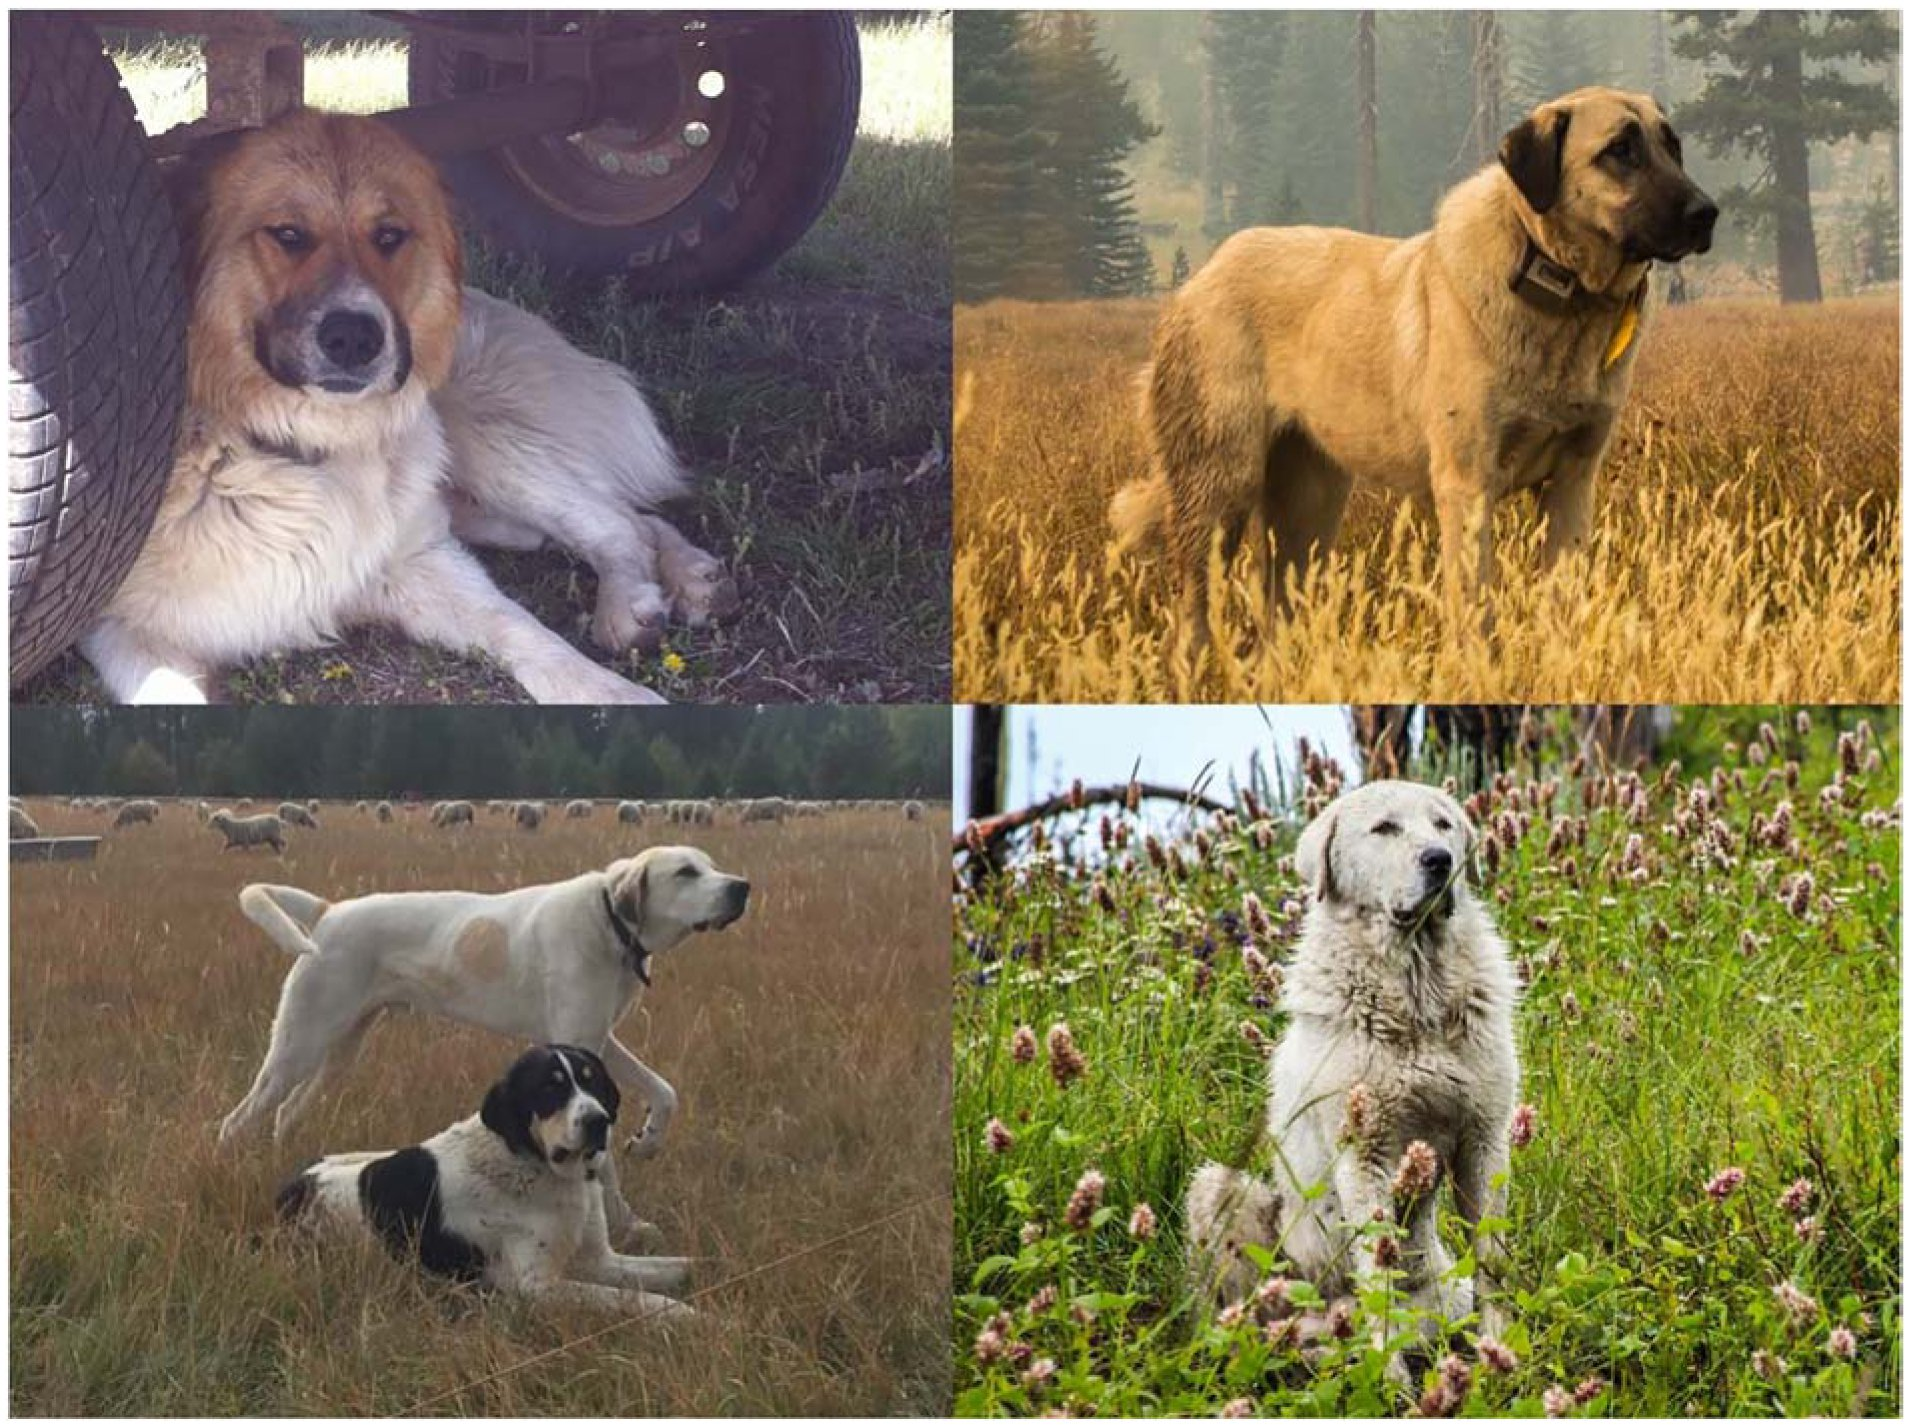 A Livestock Guardian Dog by Any Other Name: Similar Response to